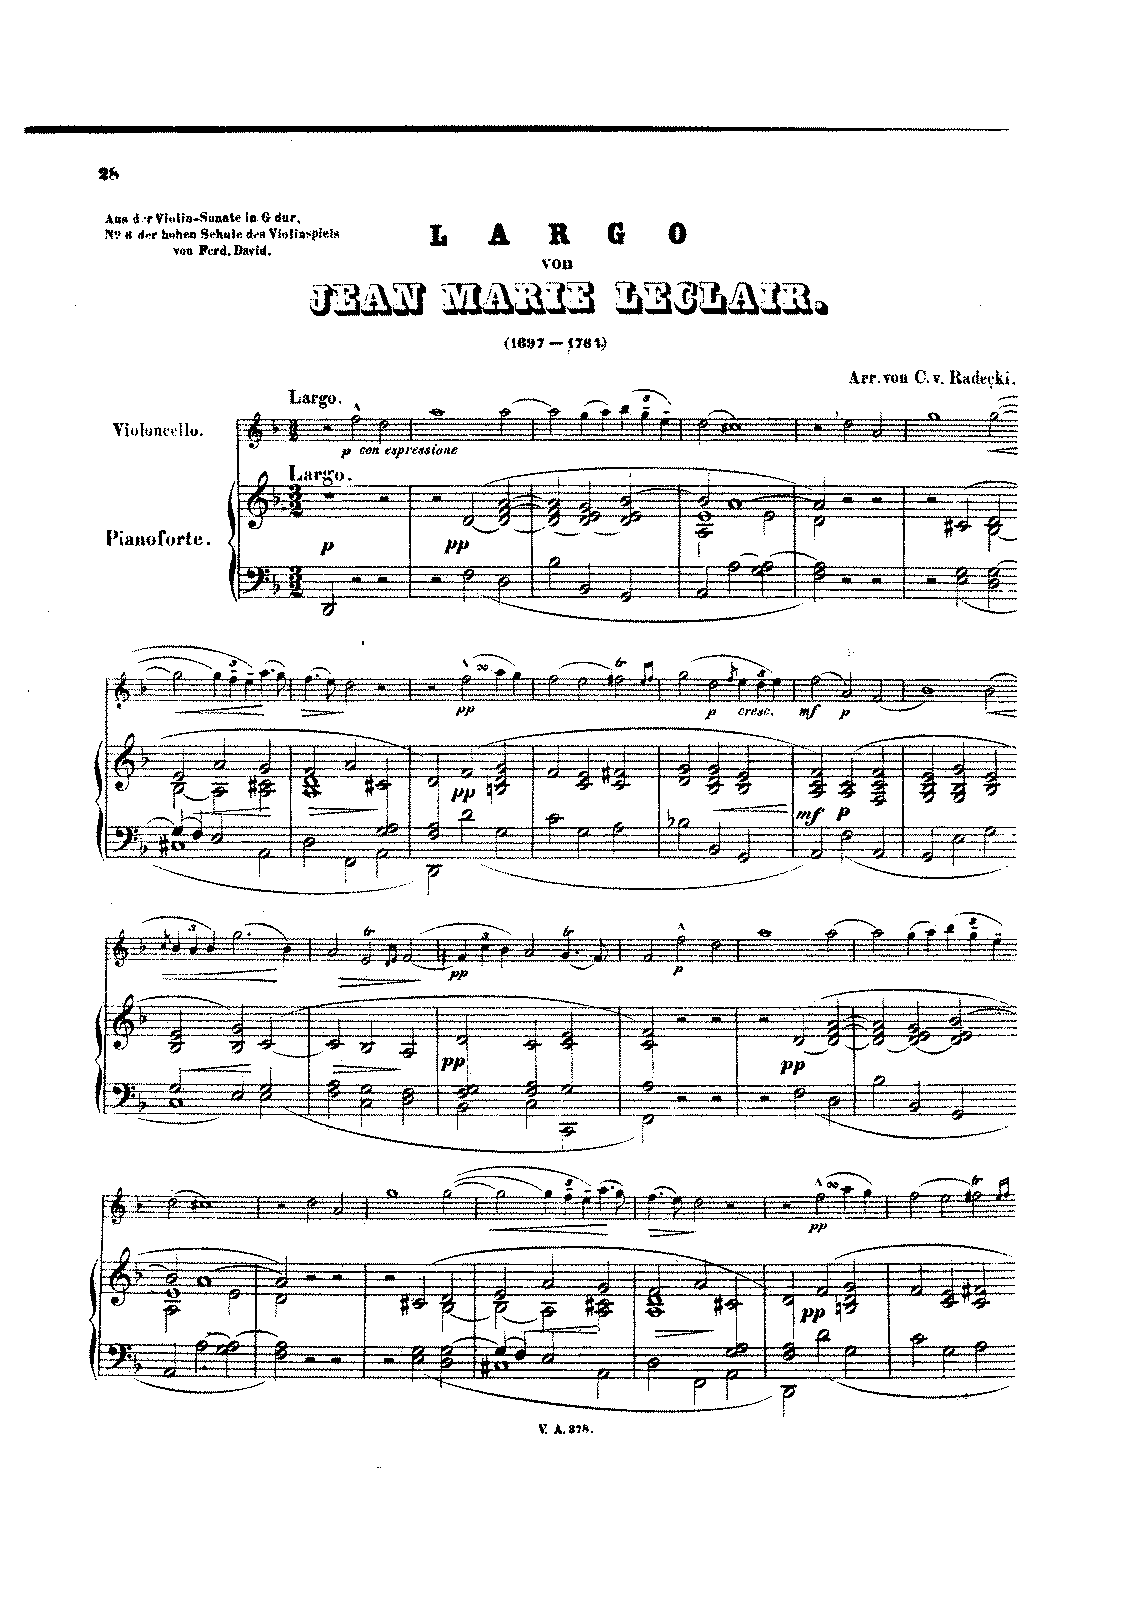 PMLP133303-Leclair - Largo from Violin Sonata in G (Radecki) for Cello and Piano score.pdf